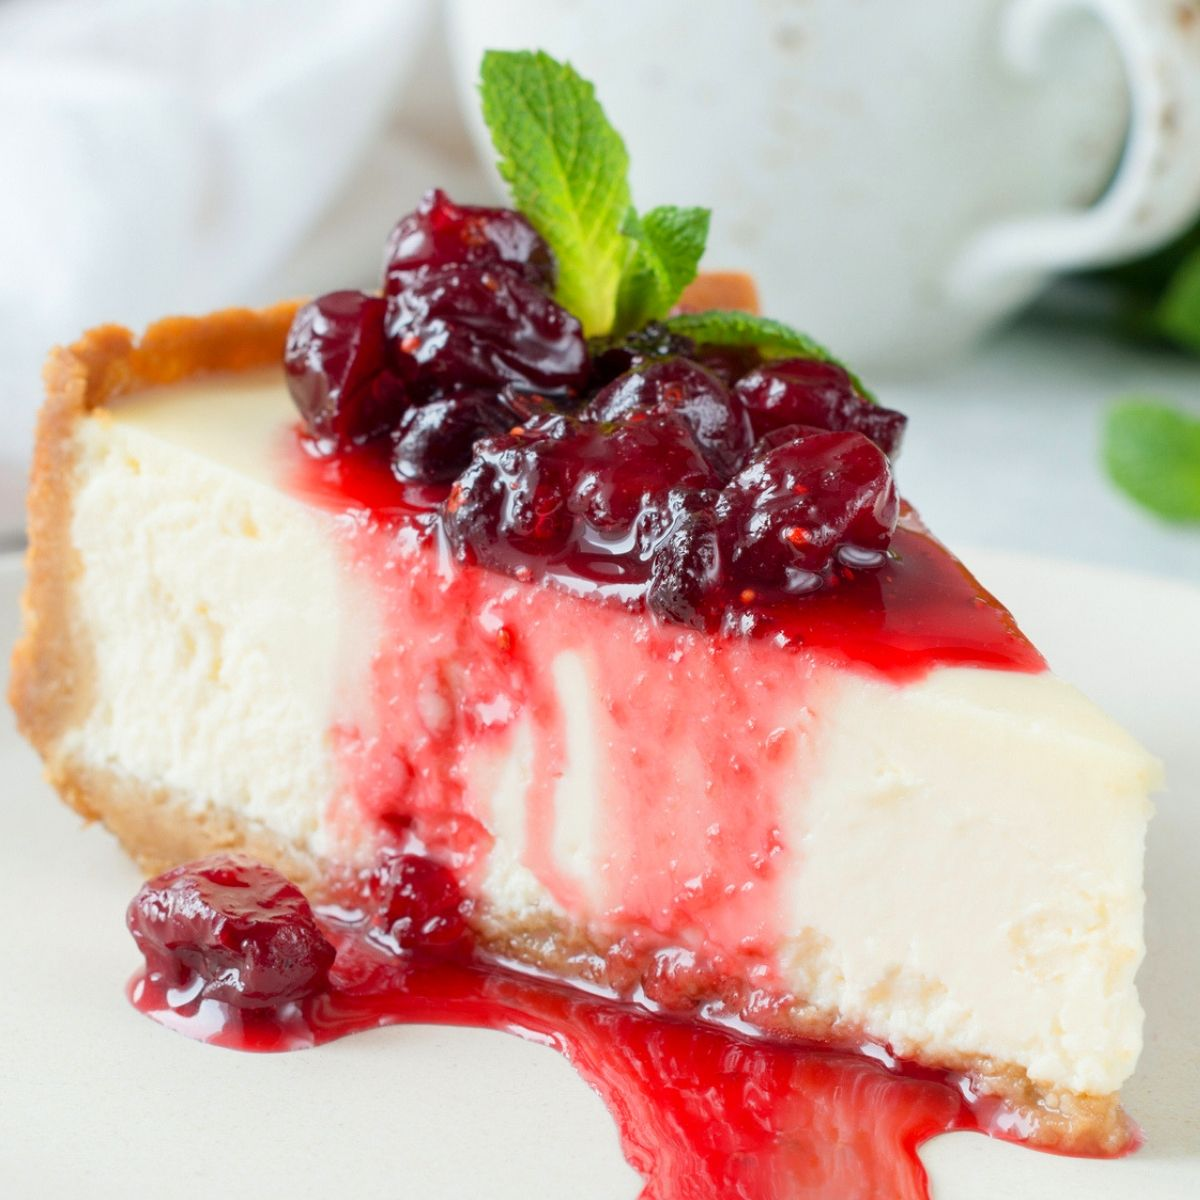 Slice of cheesecake topped with cherries and mint leaf